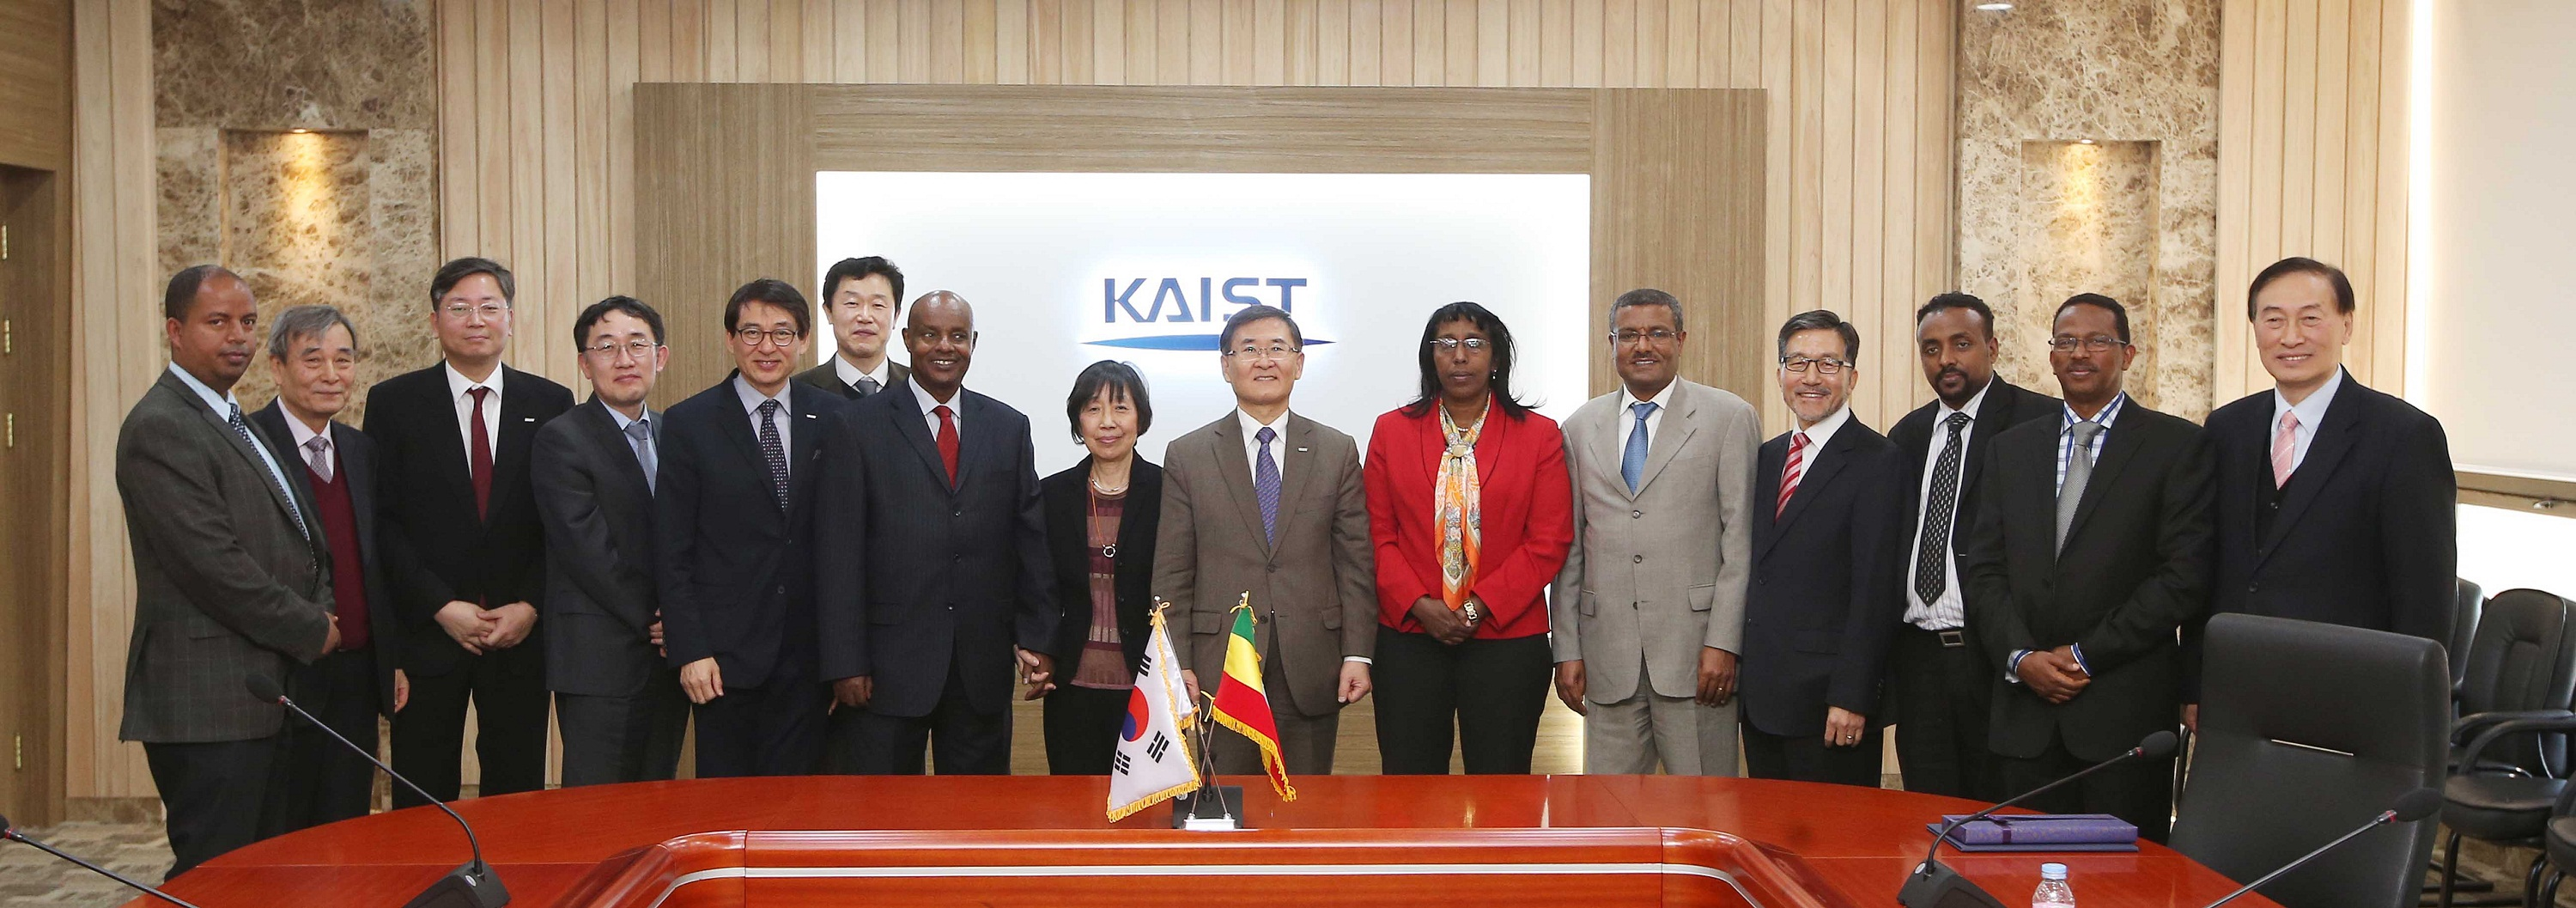 Ethiopian Minister of Education Visits KAIST 이미지